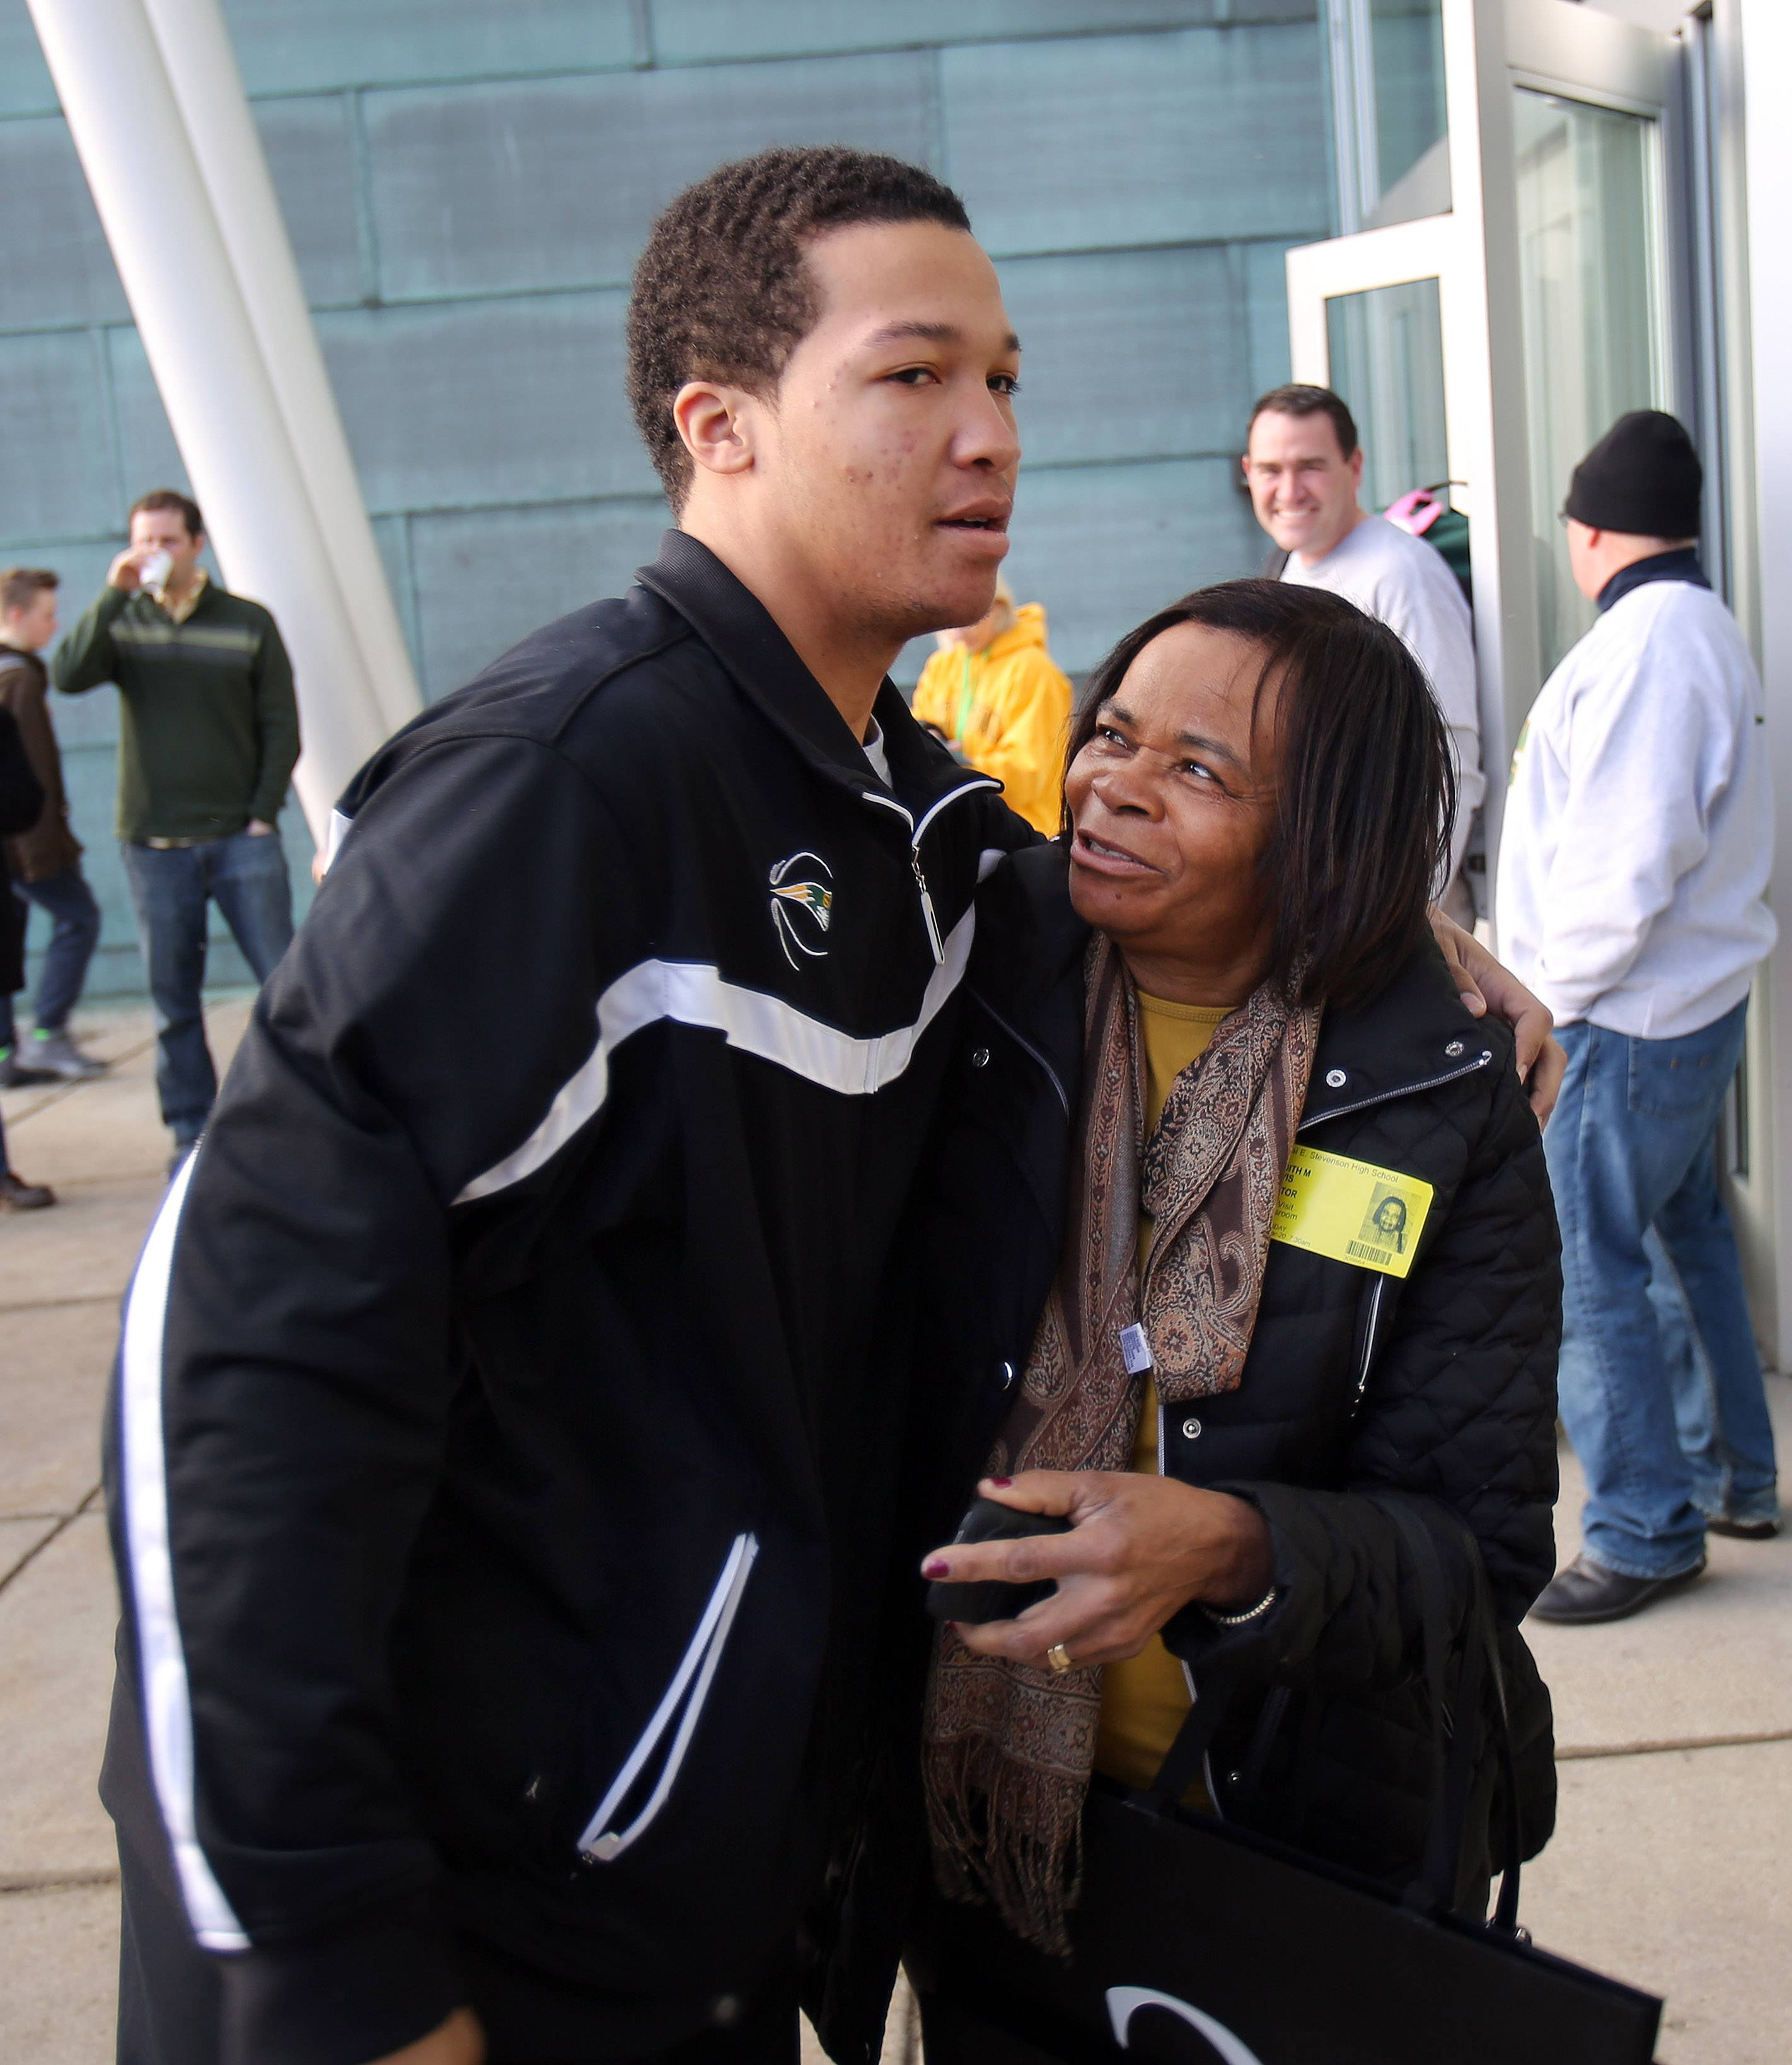 Stevenson High School basketball star Jalen Brunson hugs his grandmother, Judy Davis, during Thursday's send off for the basketball team ahead of the IHSA Class 4A state championships starting Friday in Peoria. Also honored were the school's debate and scholastic bowl teams, which compete for state championships this weekend.